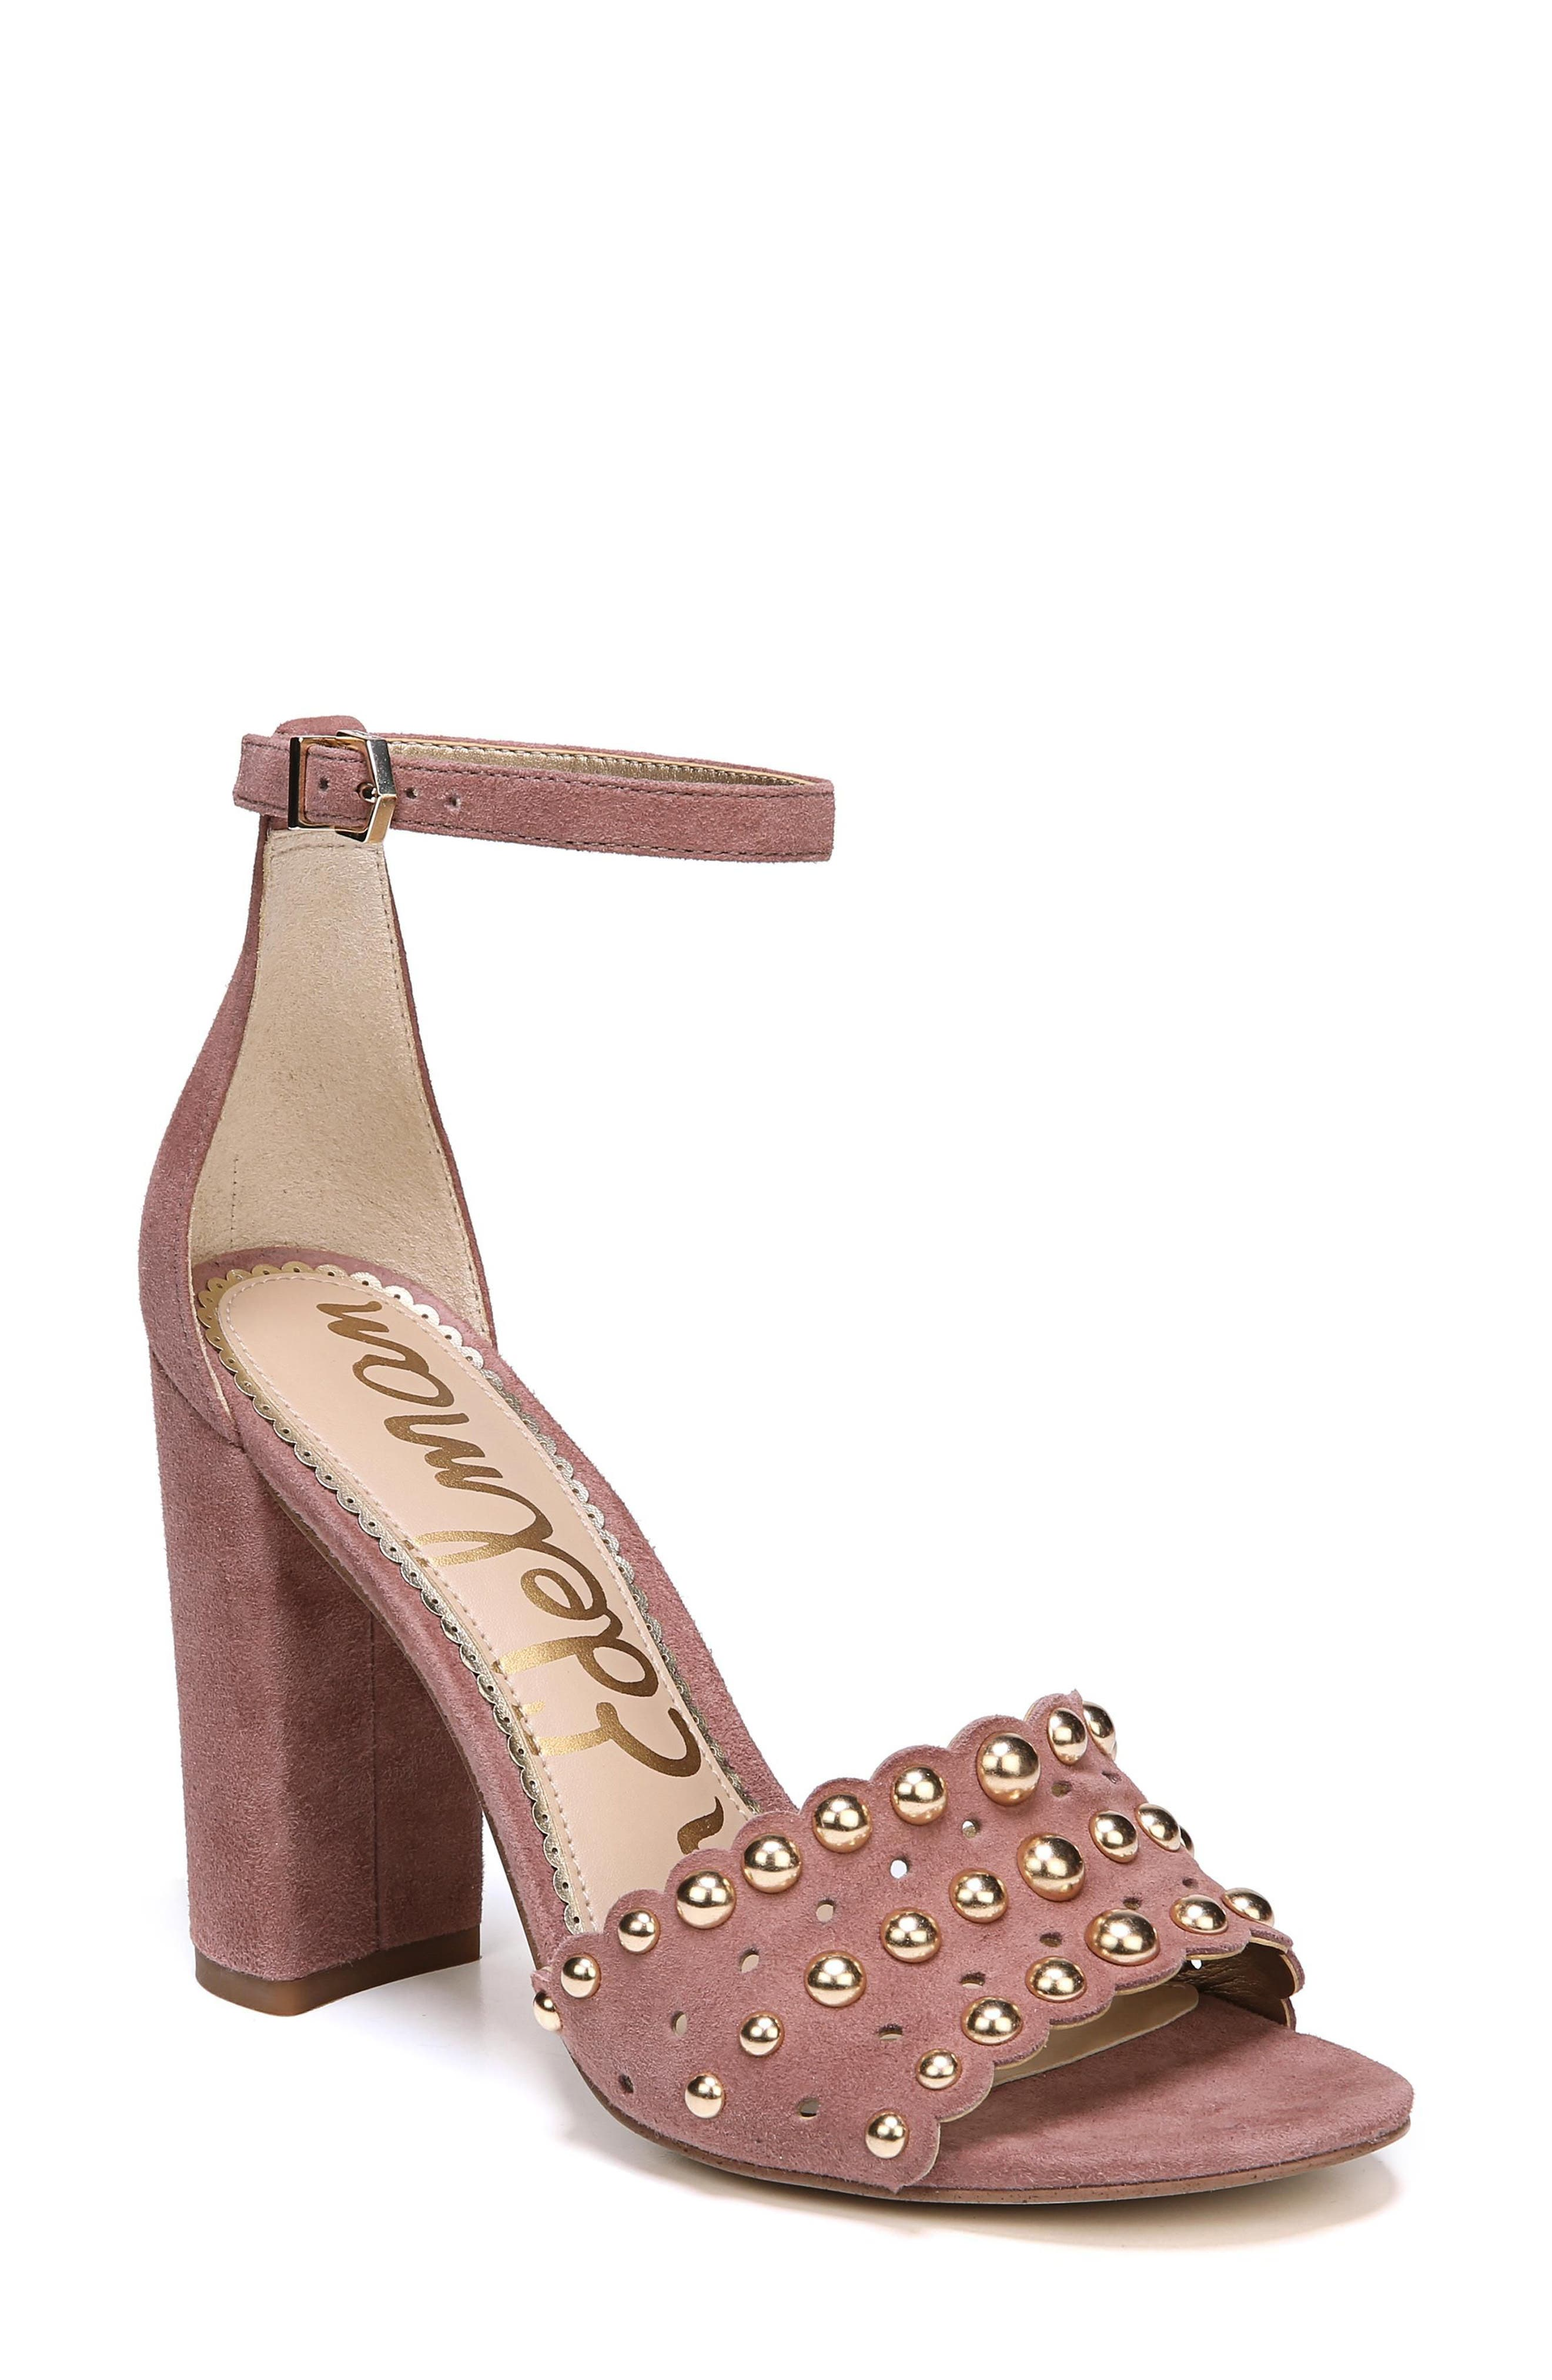 Yaria Studded Block Heel Sandal,                             Main thumbnail 1, color,                             Dusty Rose Suede